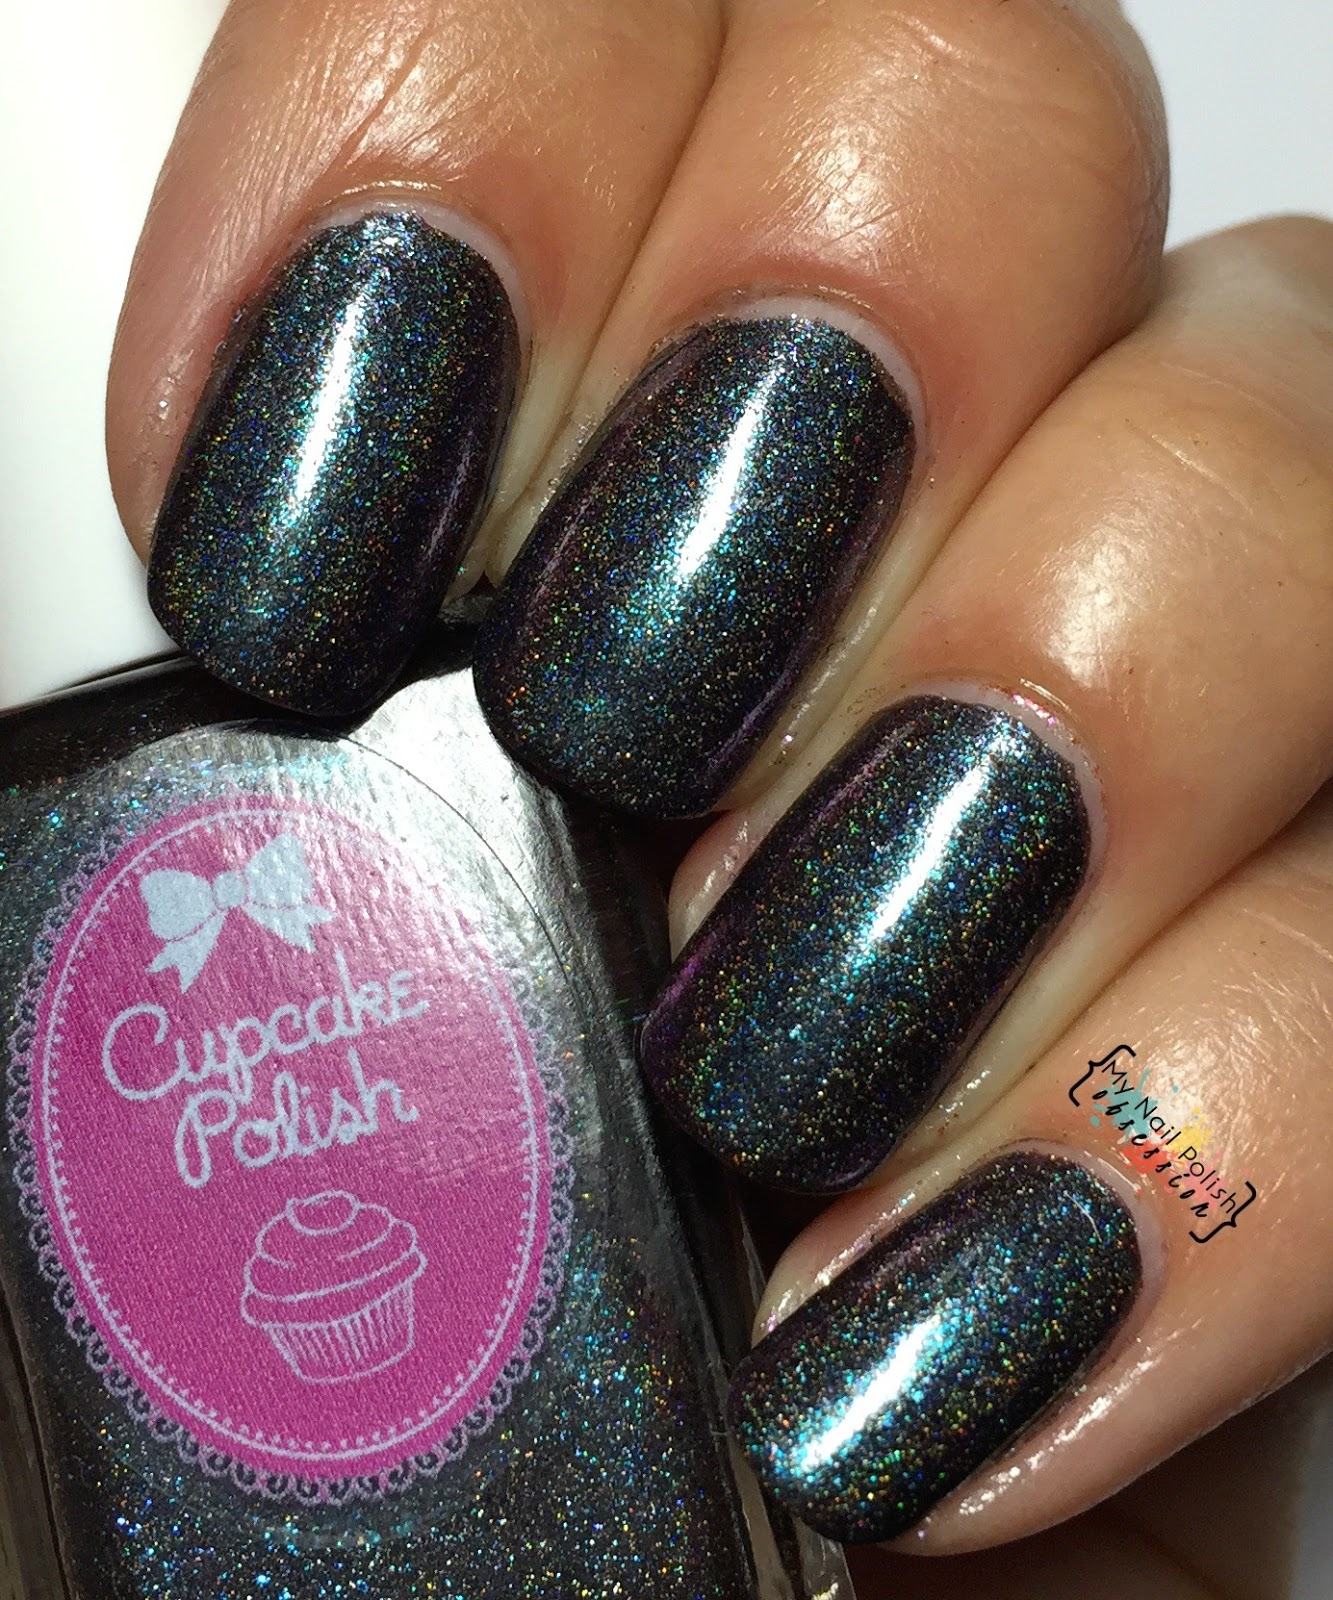 Cupcake Polish Eleanor